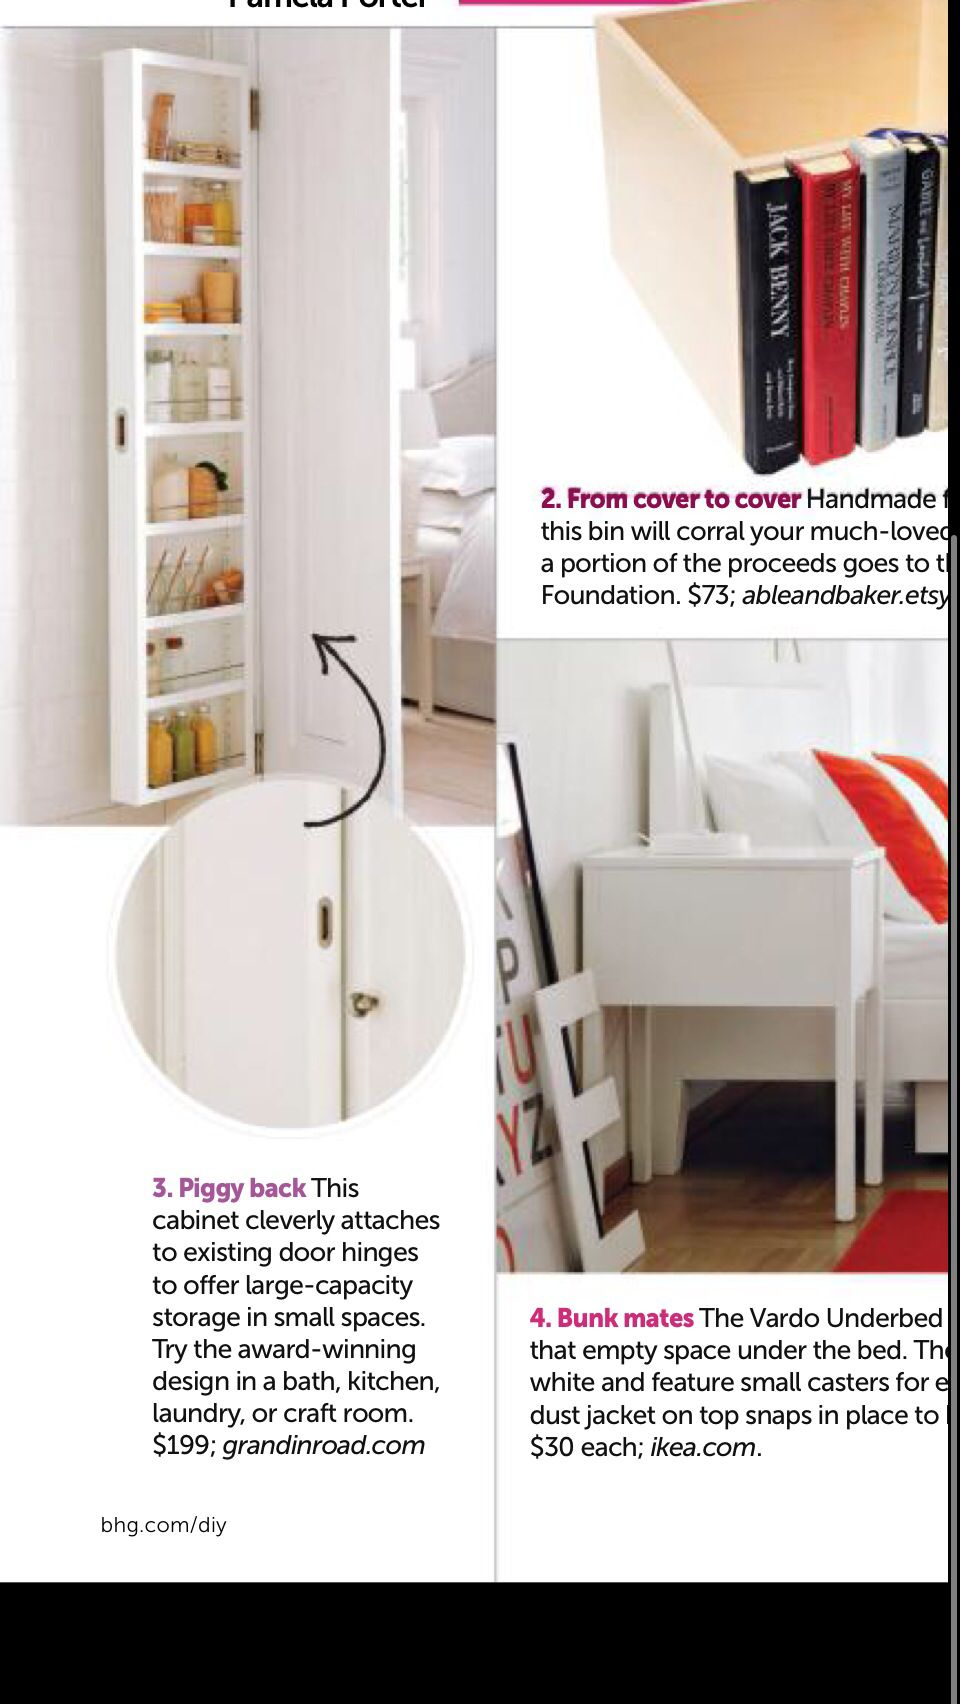 Shelves that attach to door hinges - brilliant.